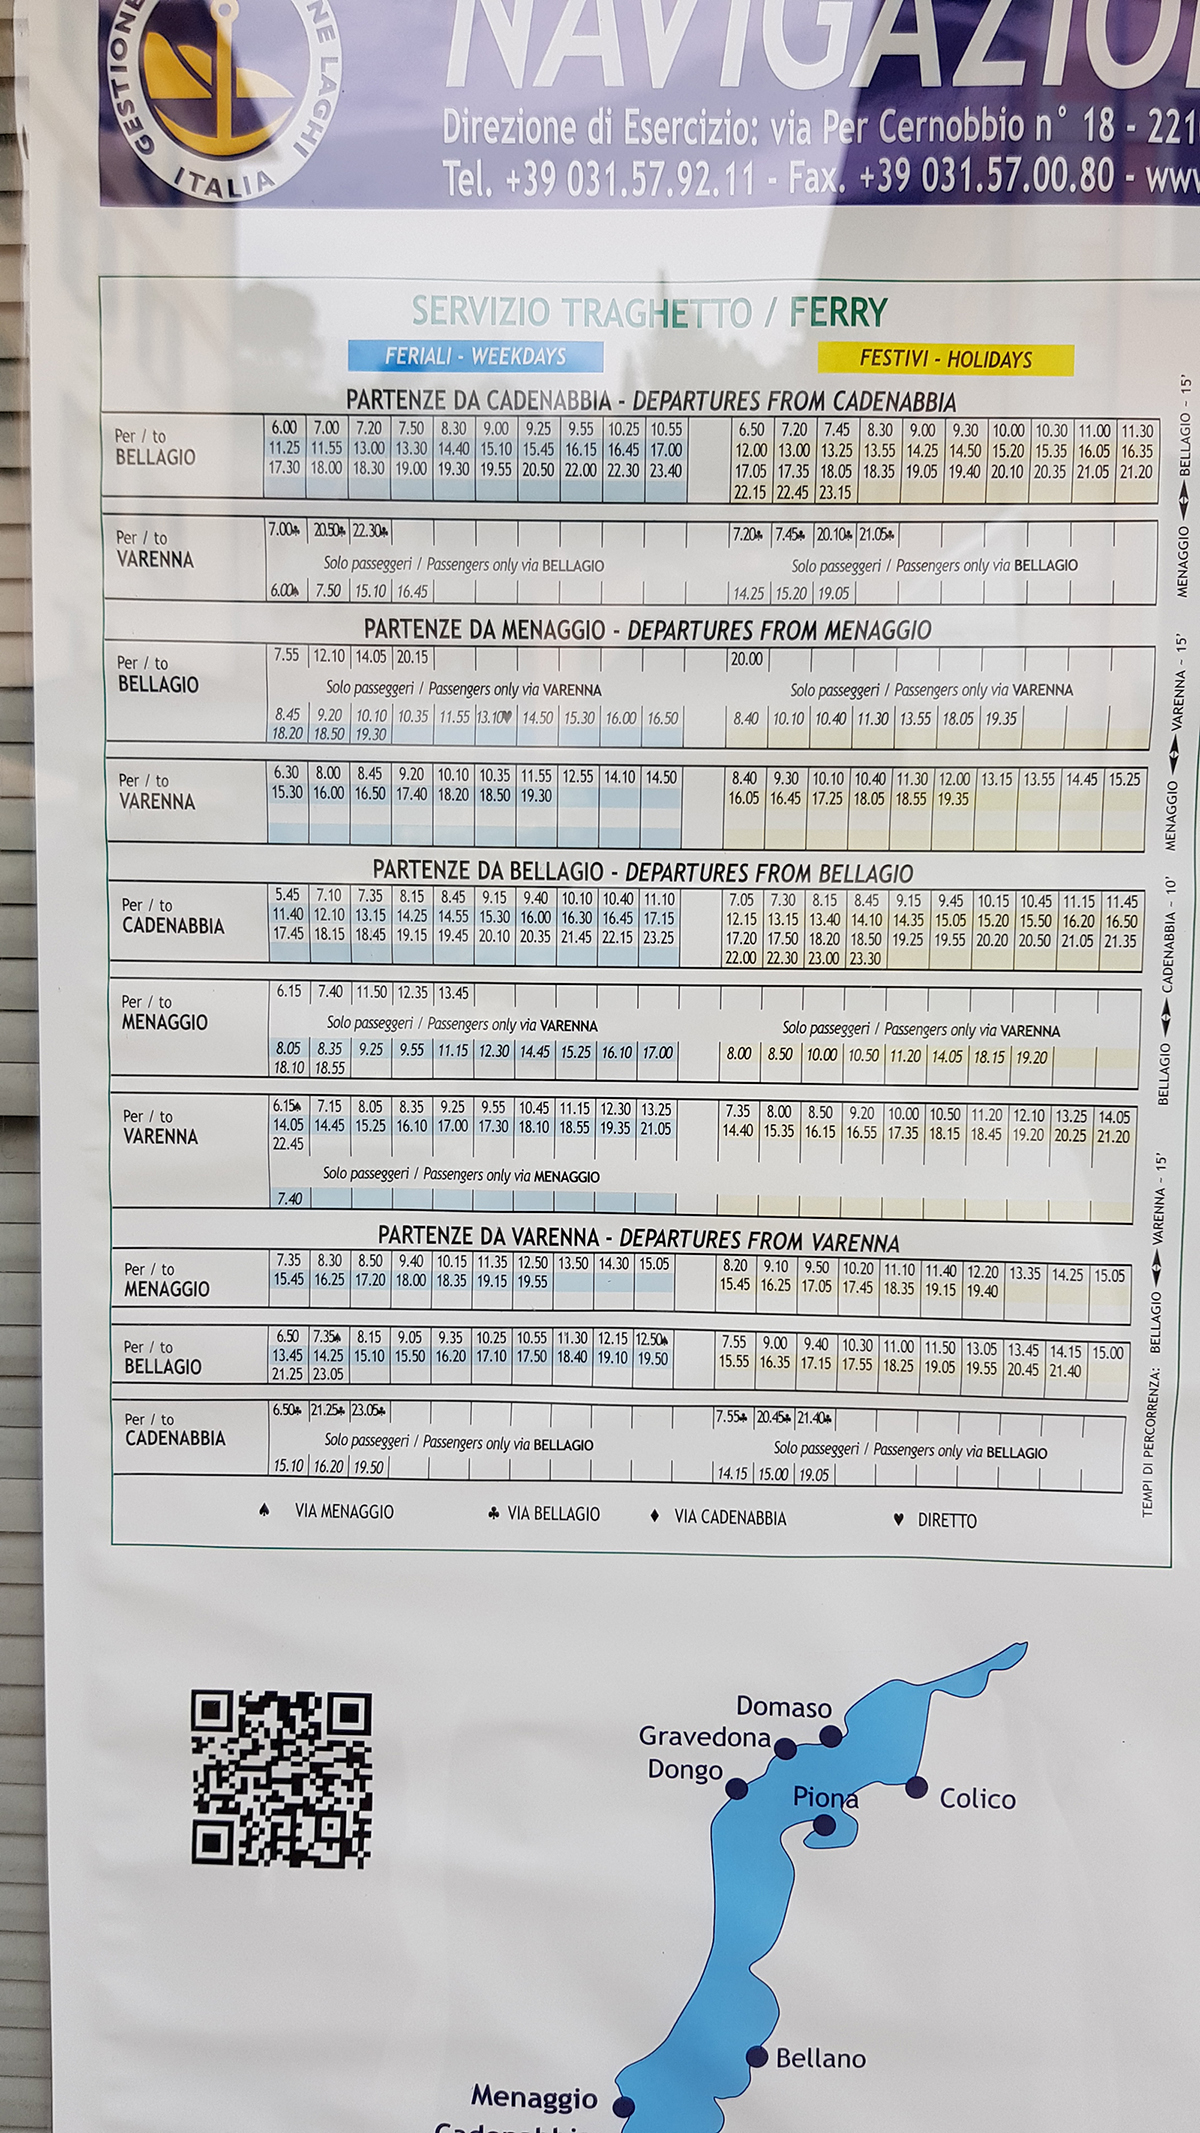 Ferry time table